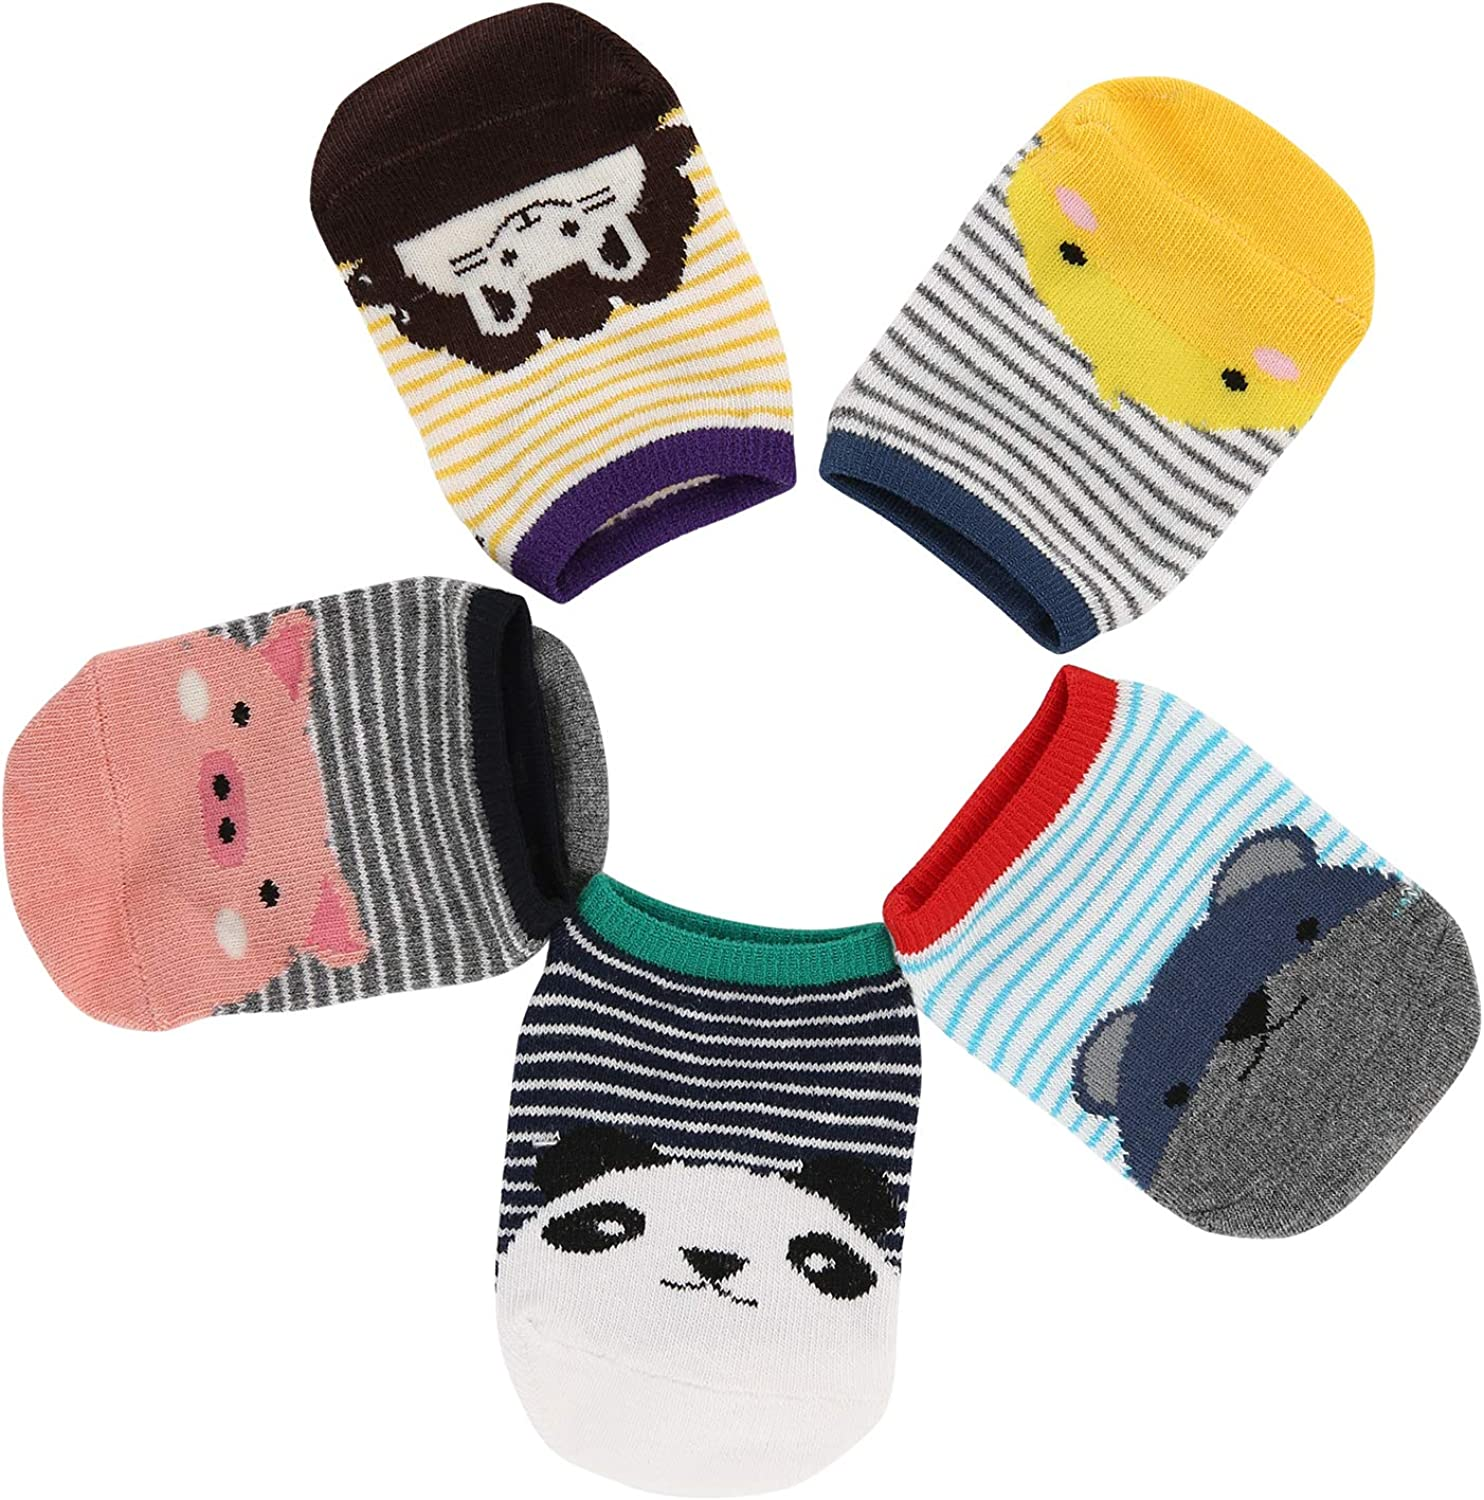 Athlemo Baby Girl Boy Toddler Infant No Show Low Cut Socks Colorful Assorted Unisex Newborn Kids Cotton Socks 5 Pairs 0-2T